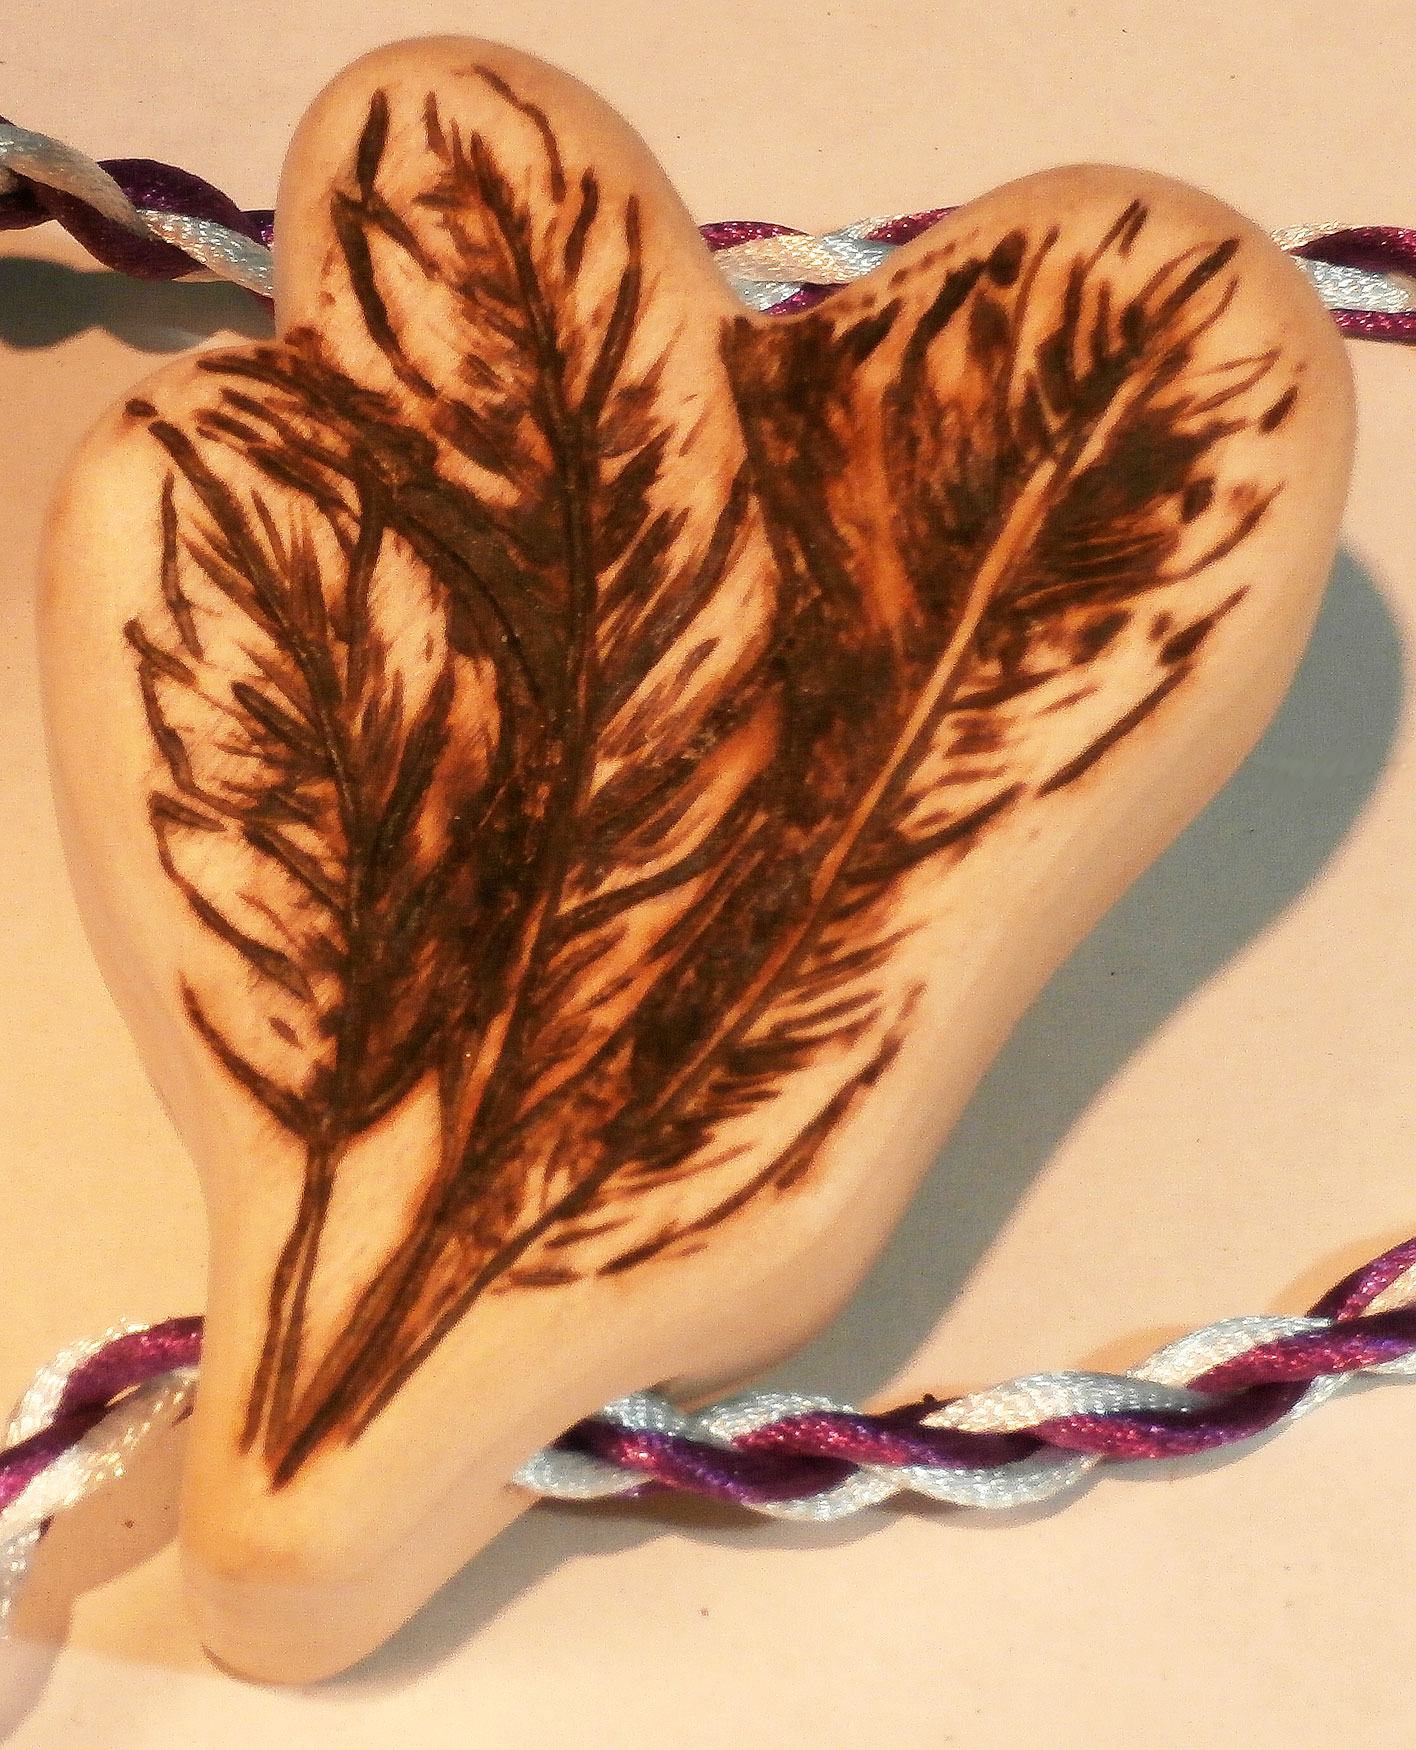 Wood burnt detail of feathers on teether handle for baby shower gift.